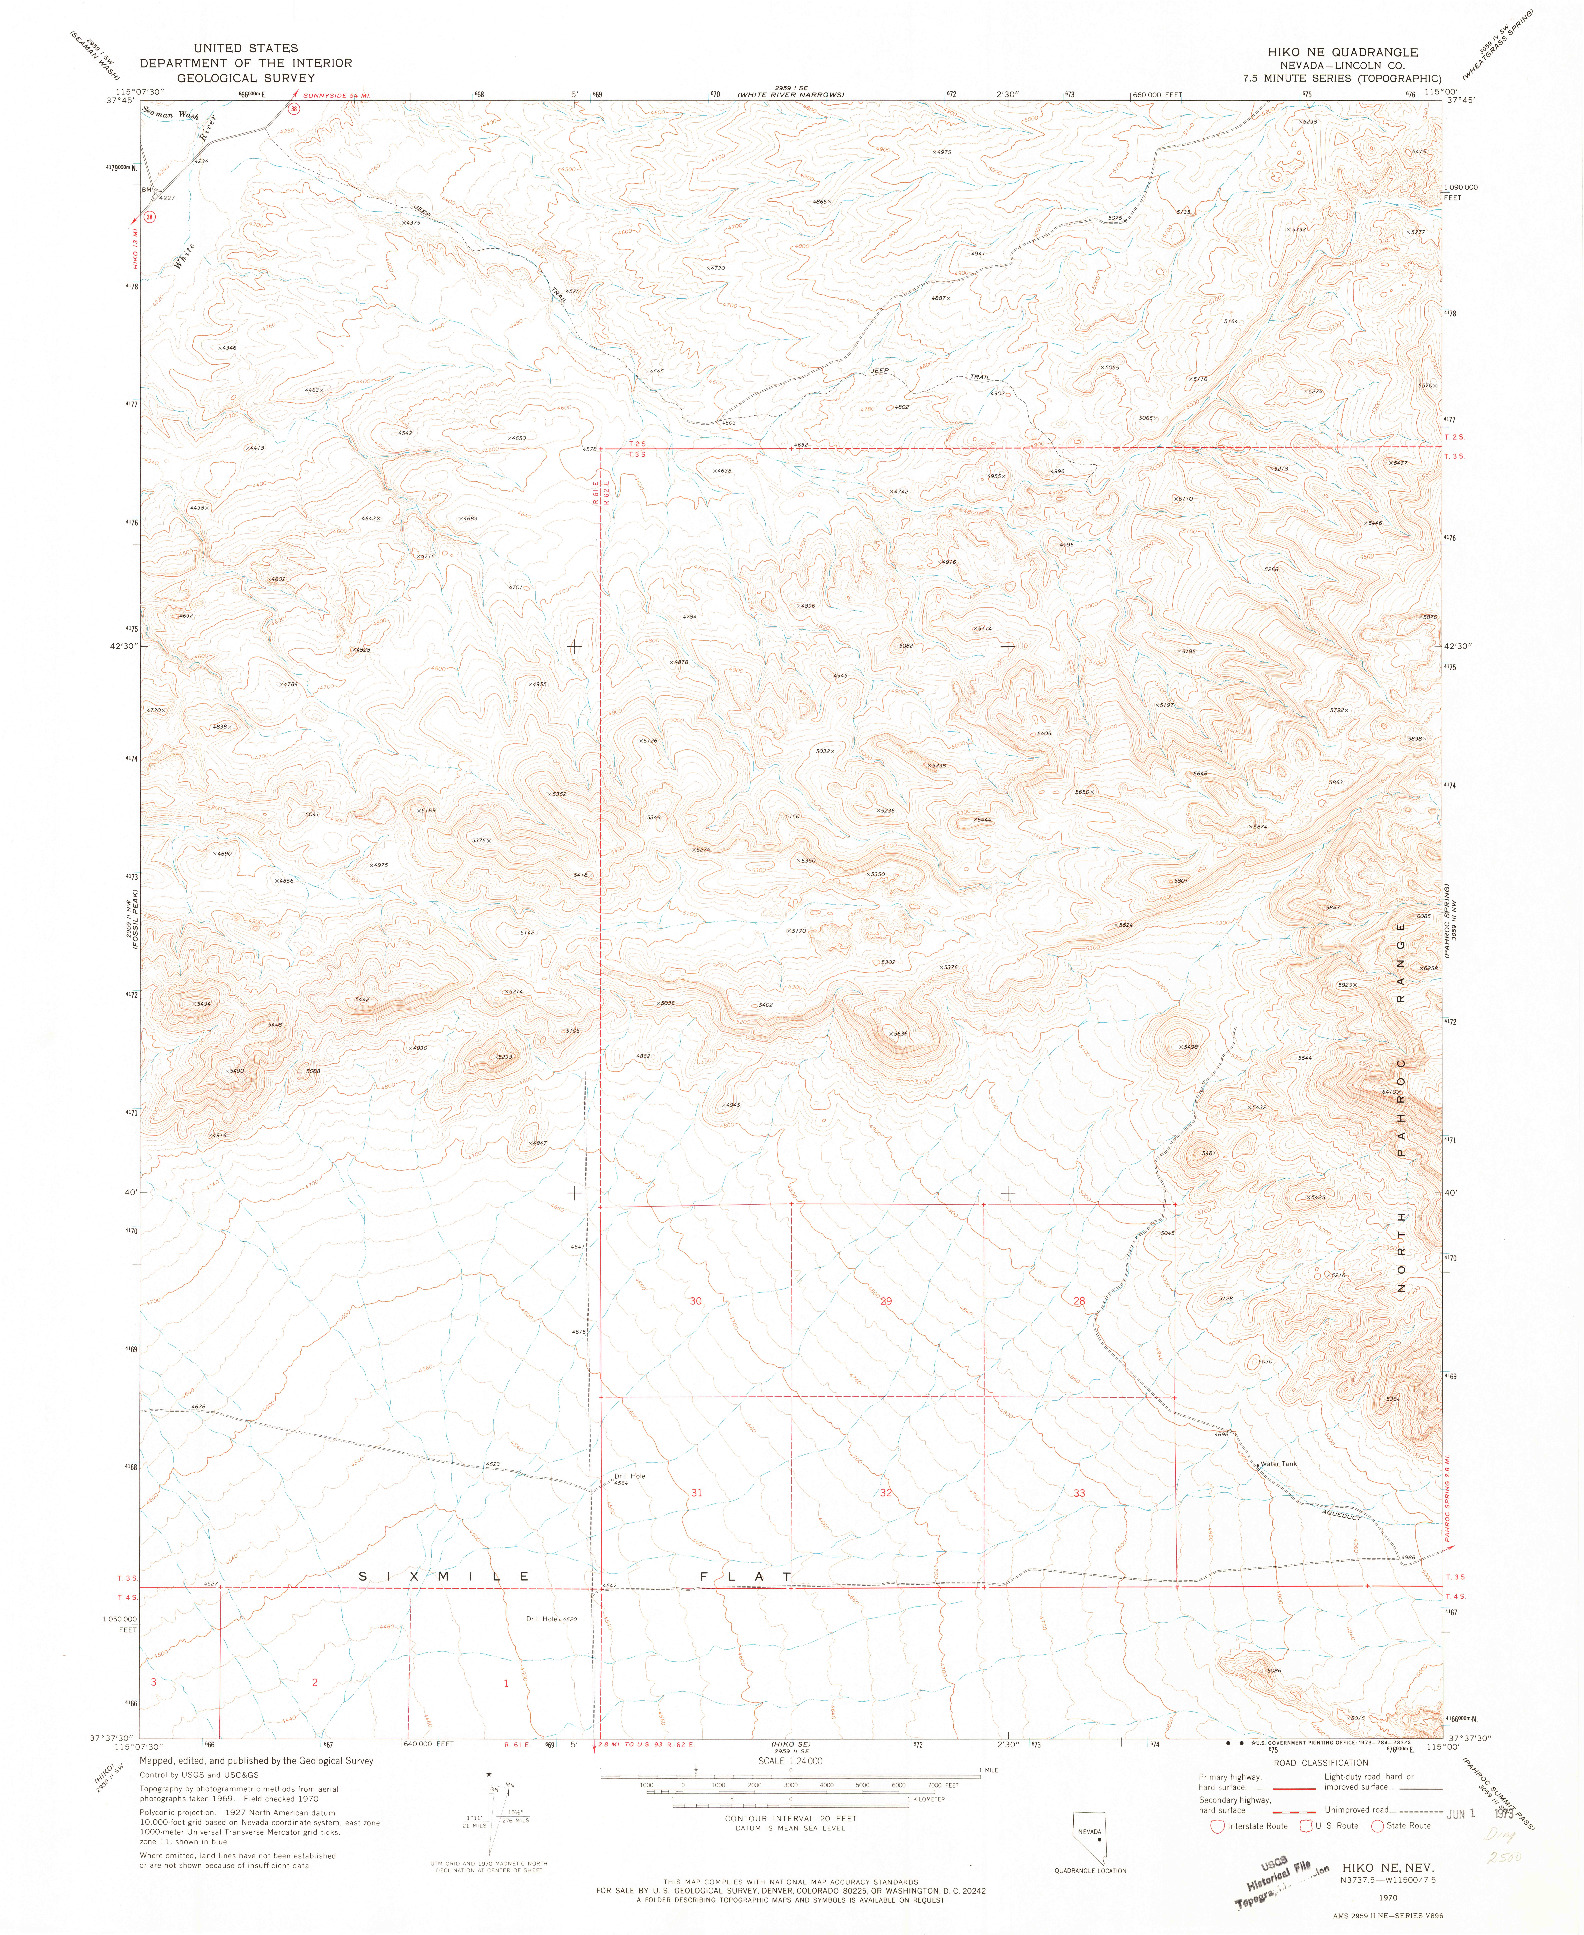 USGS 1:24000-SCALE QUADRANGLE FOR HIKO NE, NV 1970